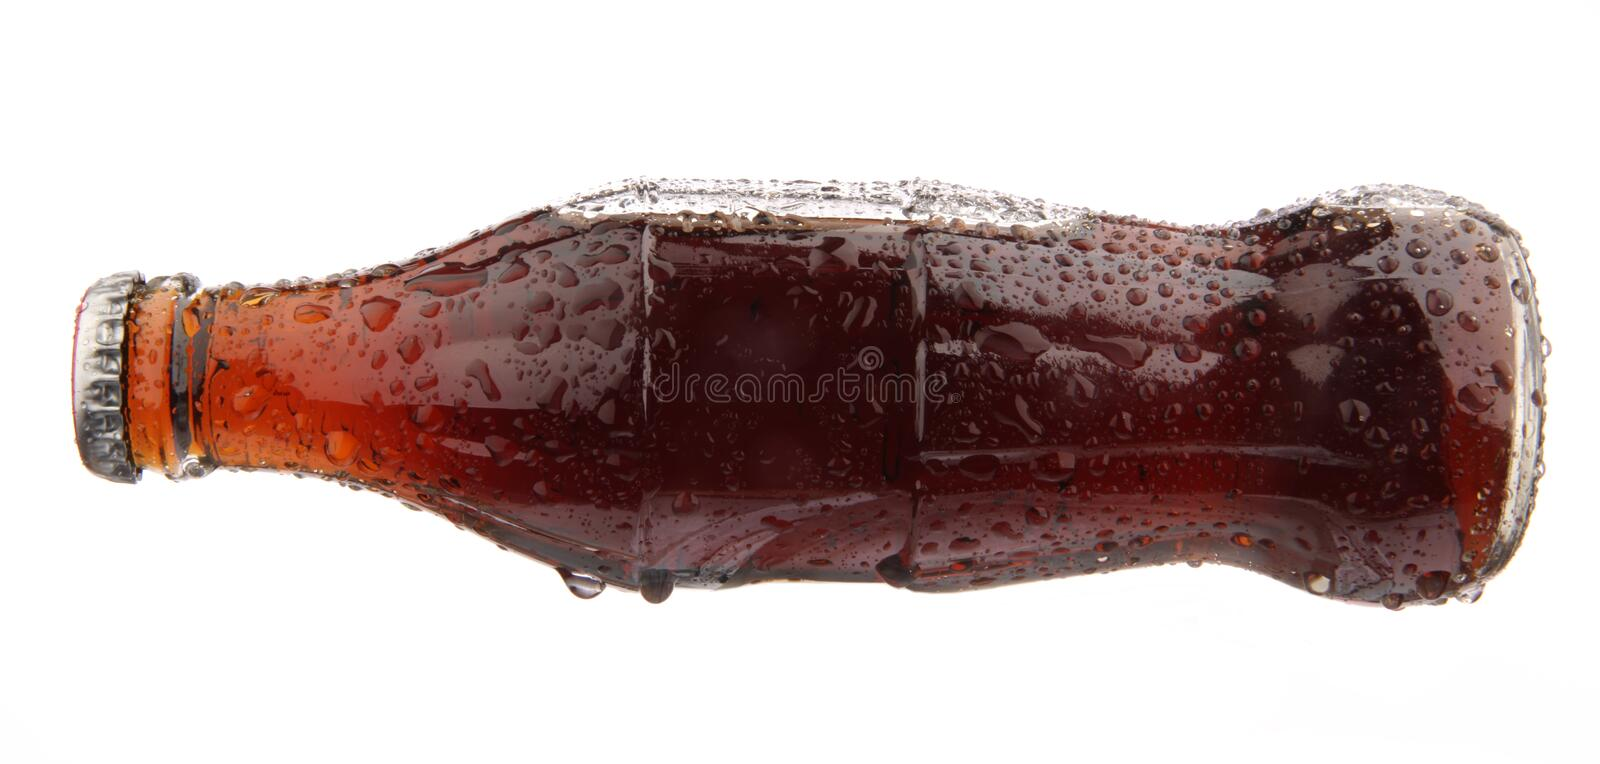 A bottle of cola soda isolated on a white backgrou royalty free stock image